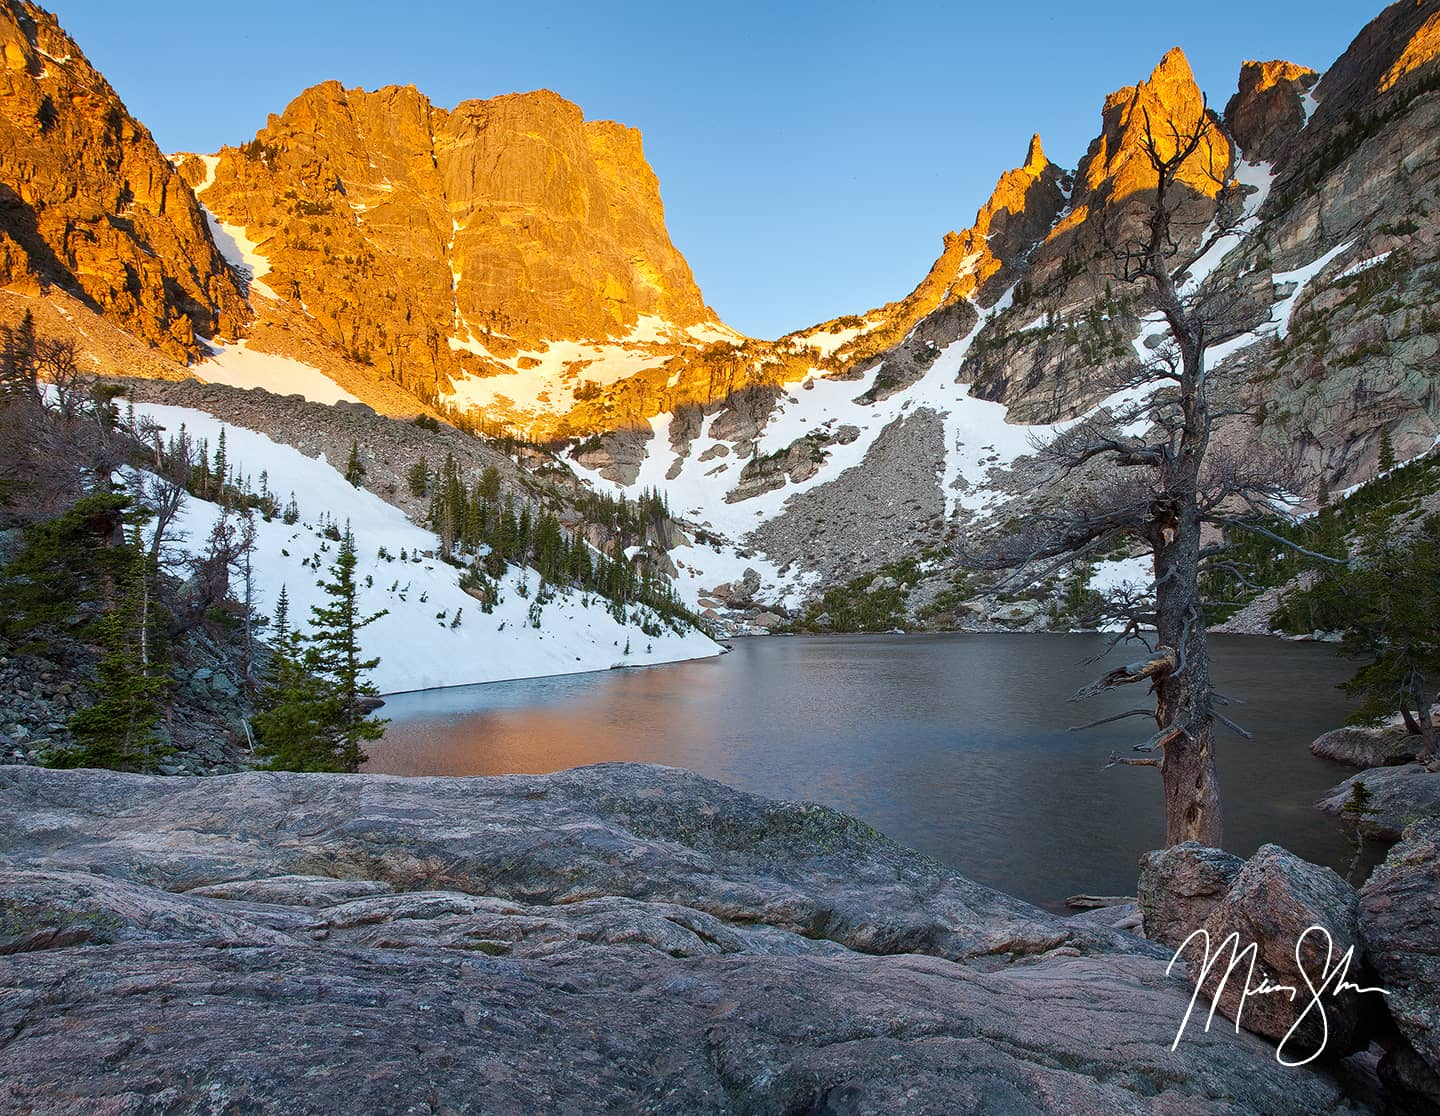 Open edition fine art print of Emerald Lake Alpineglow from Mickey Shannon Photography. Location: Emerald Lake, Estes Park, Rocky Mountain National Park, Colorado